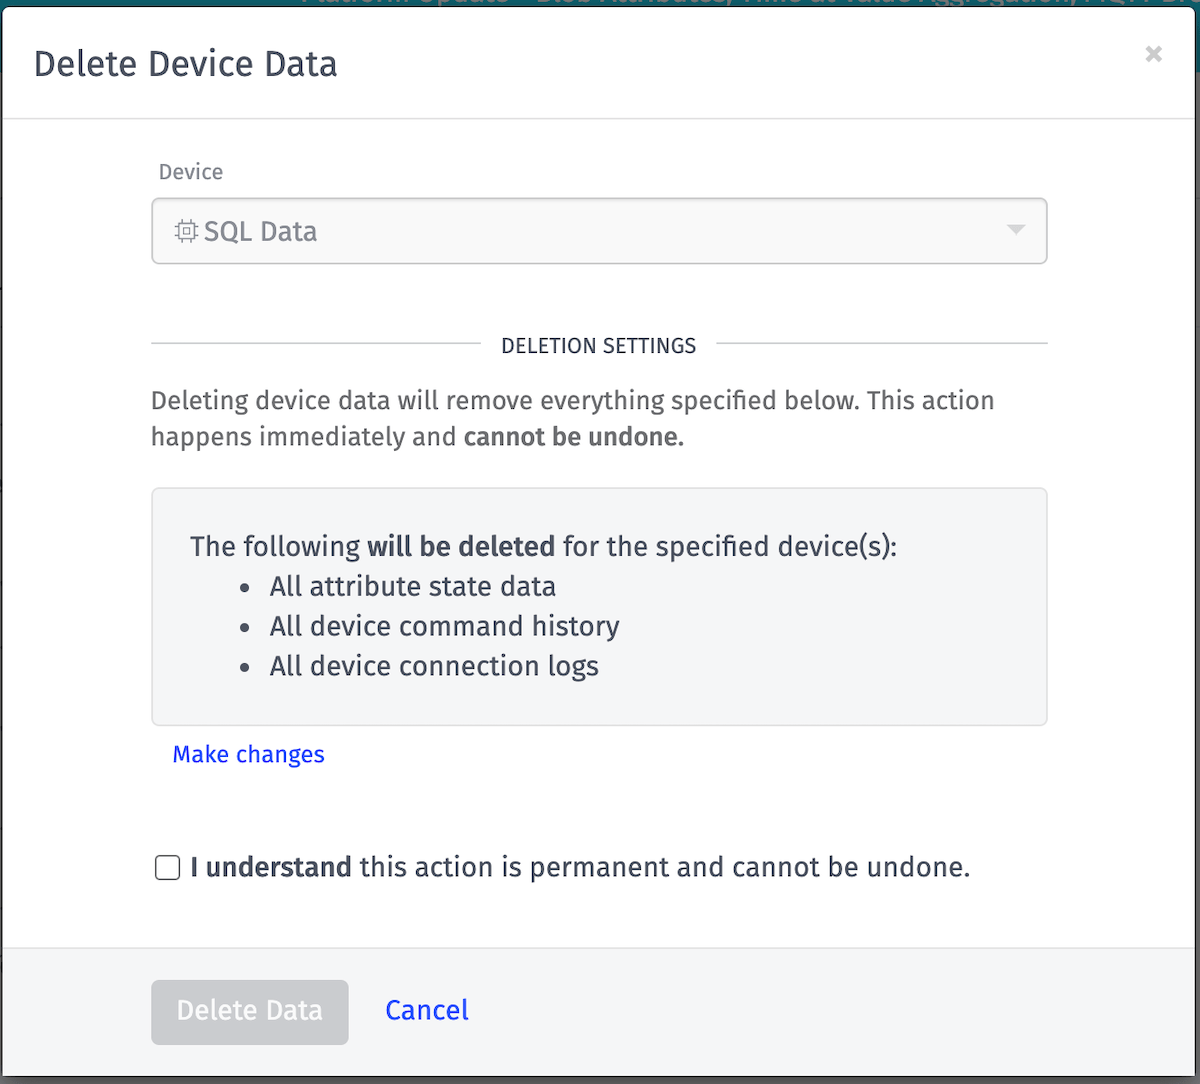 Delete Device Data